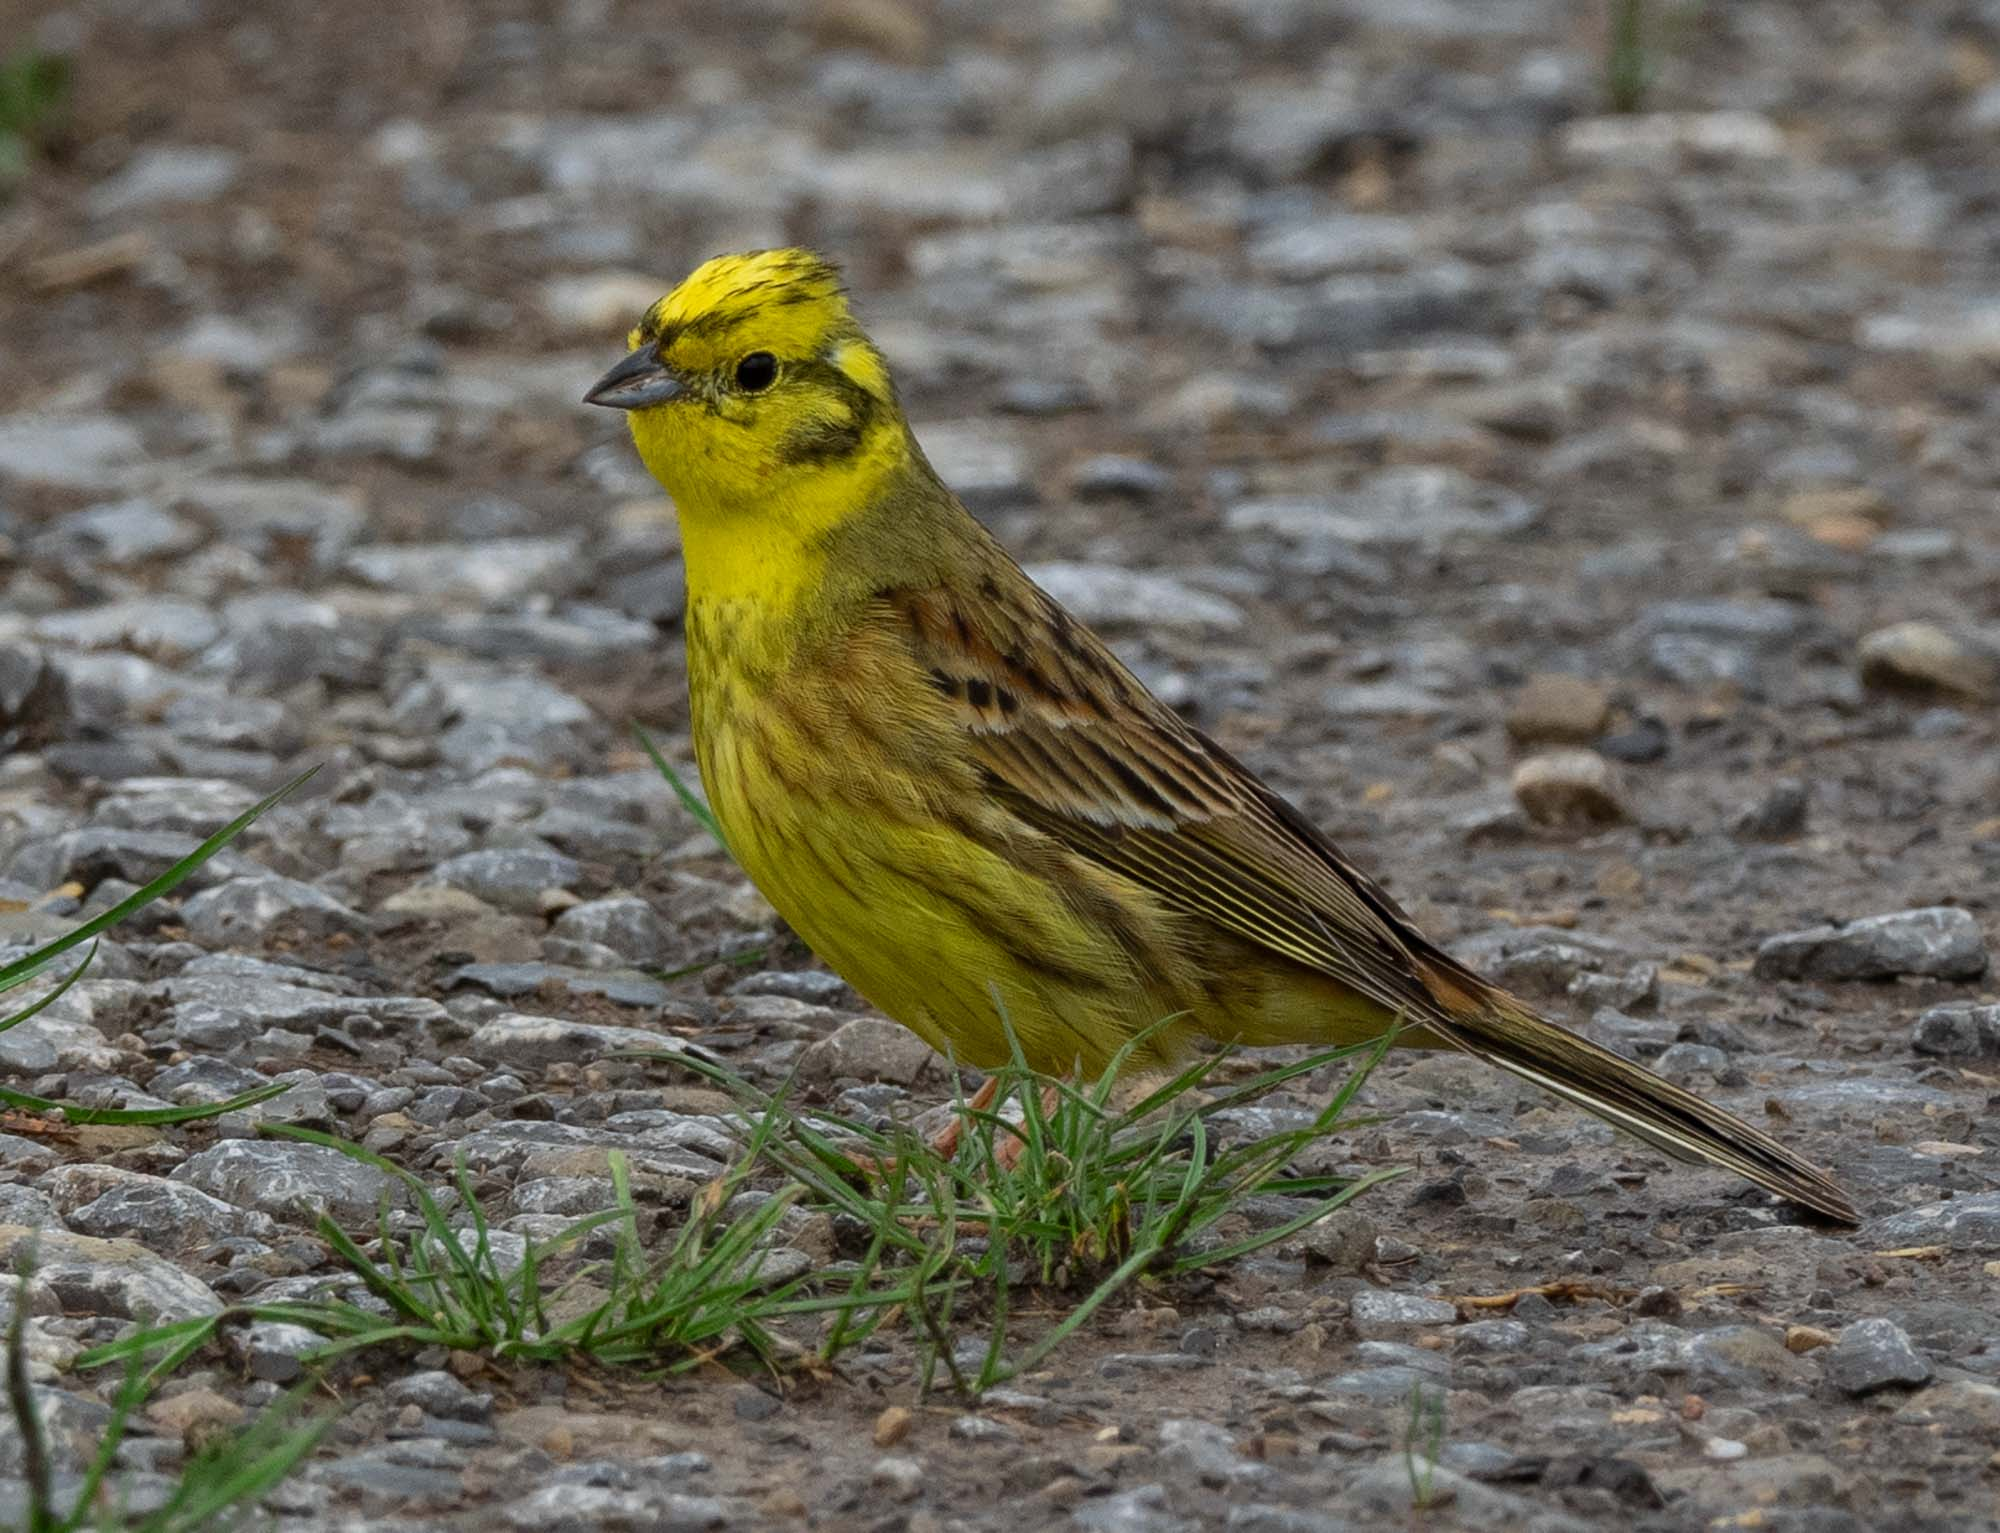 Many birds like this Yellowhammer were seen in the meadows